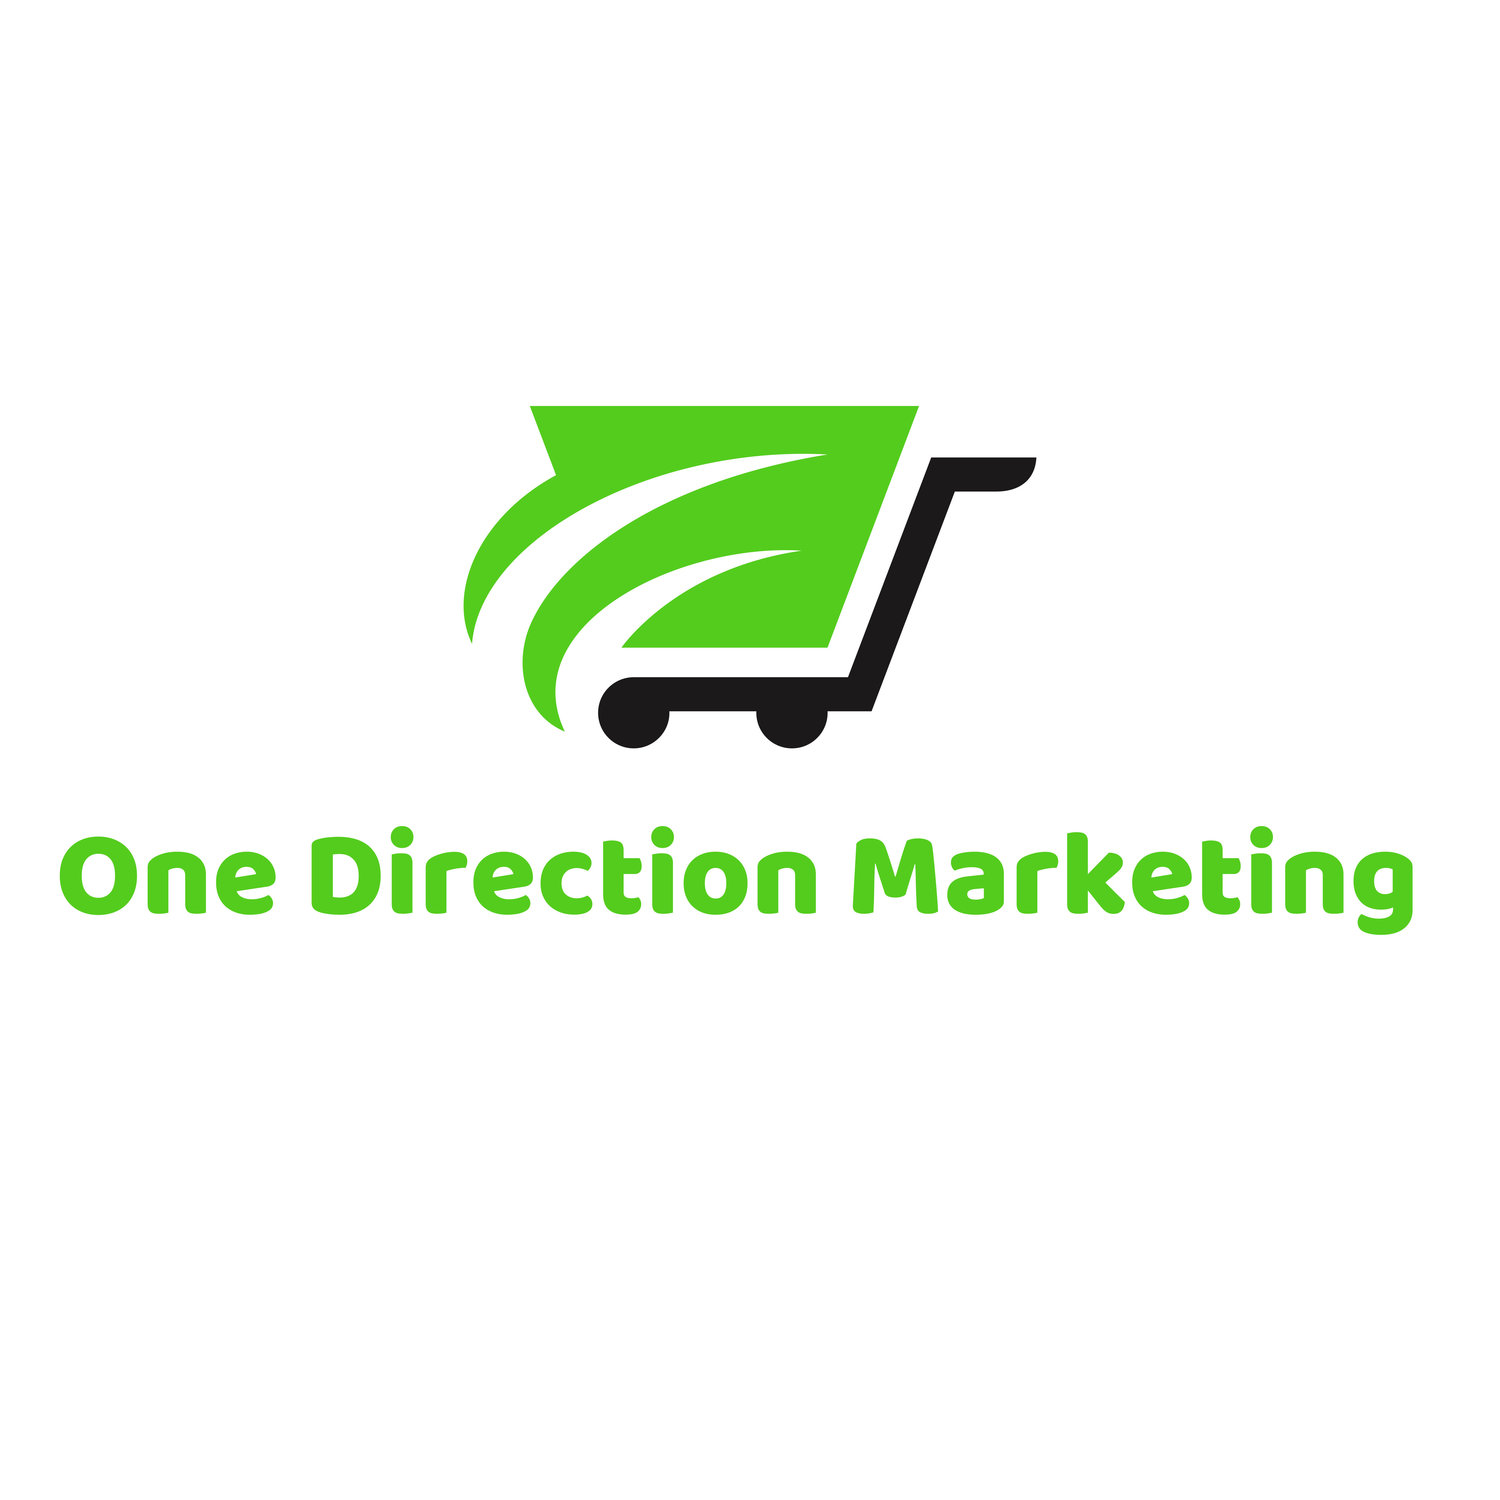 One Direction Marketing